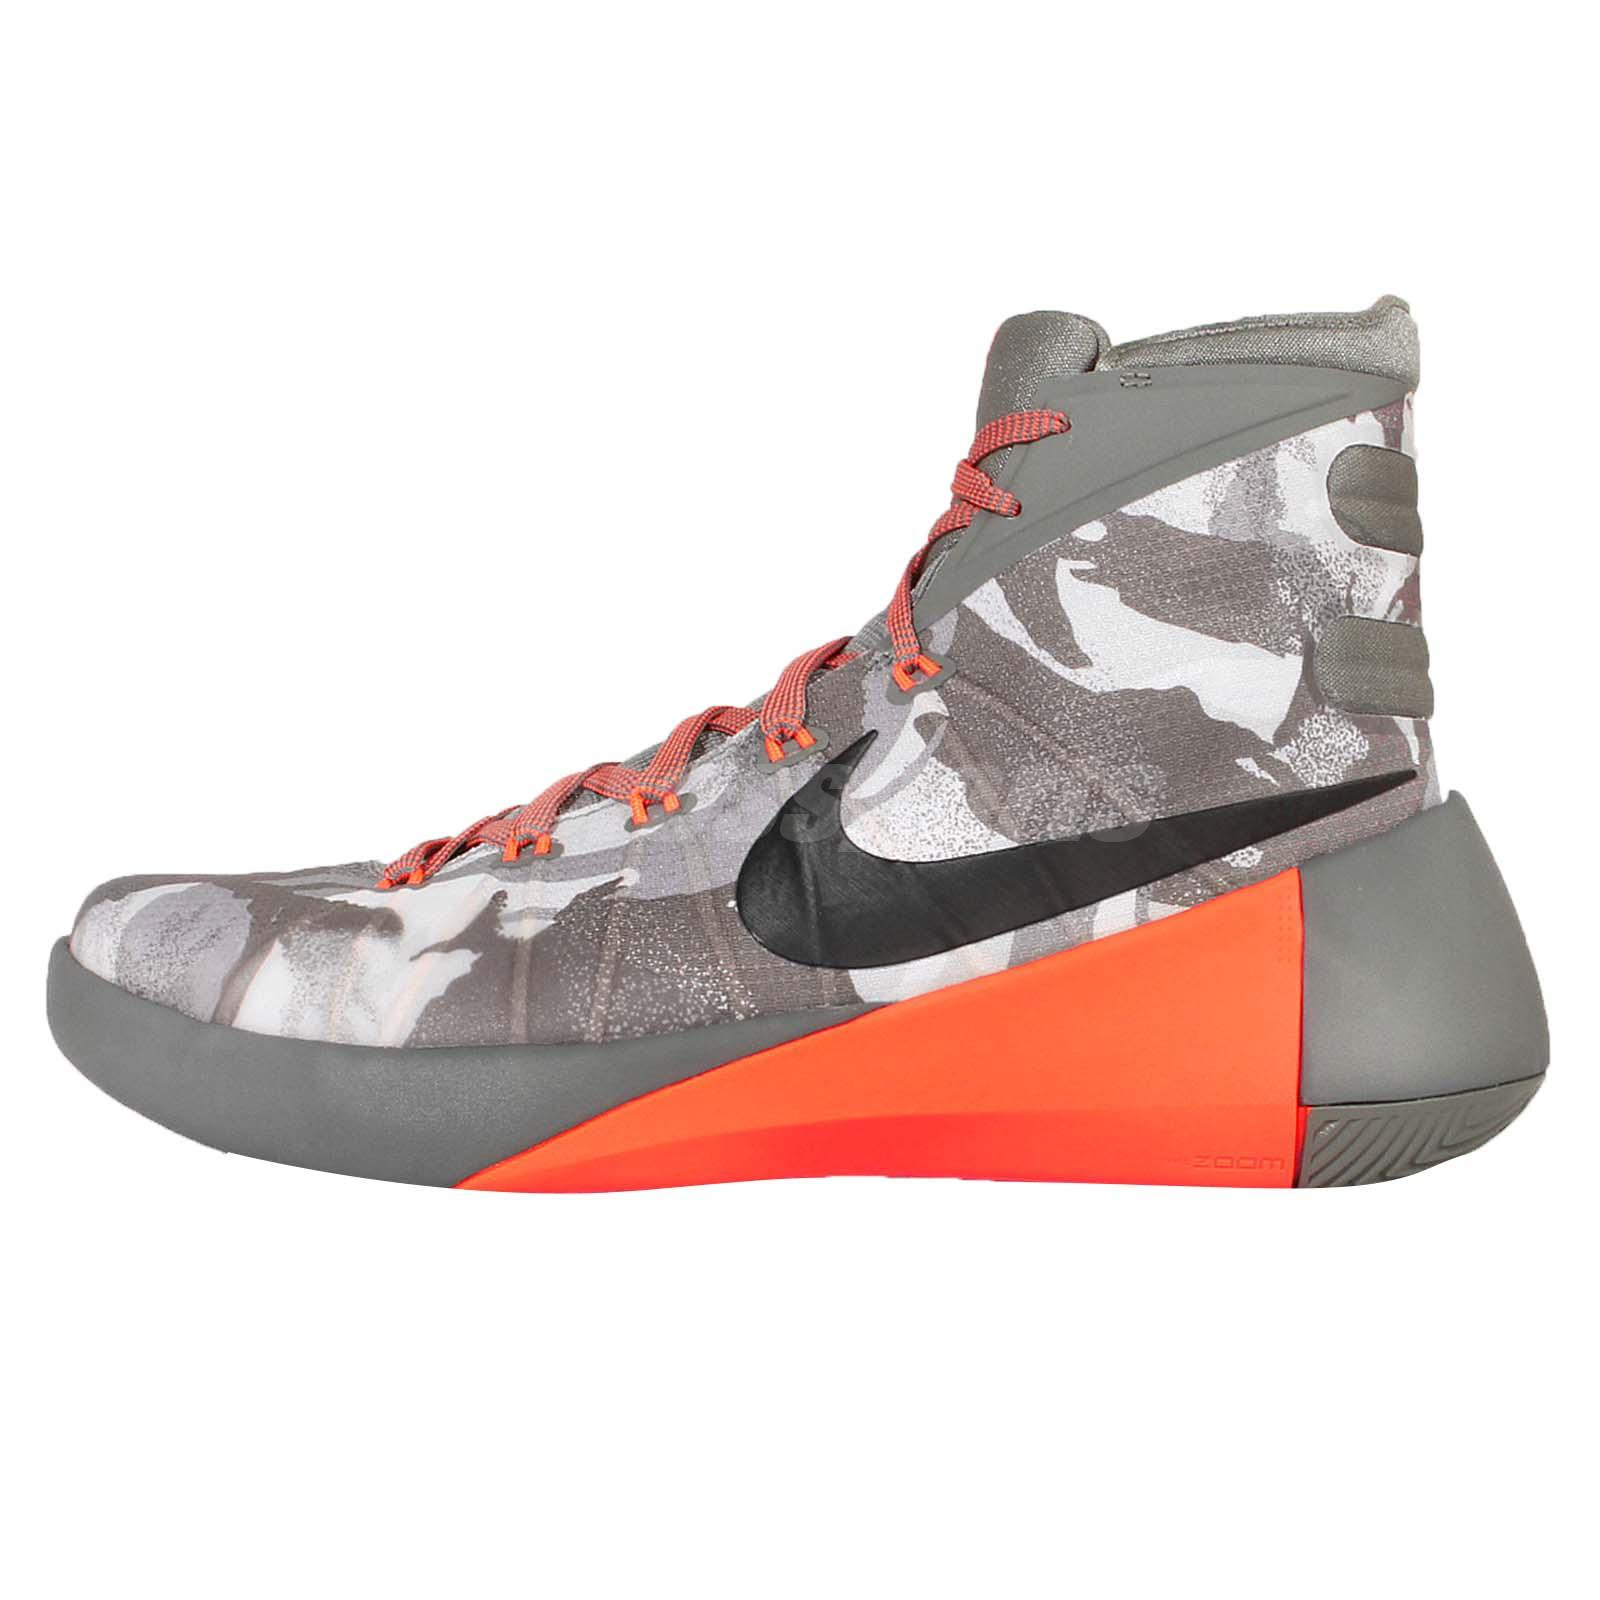 sale retailer 972dd 22d66 ... clearance reasonable sale price d2e2e 78587 wholesale online 5bd48  031b5 nike hyperdunk 2015 prm 5f743 b0583